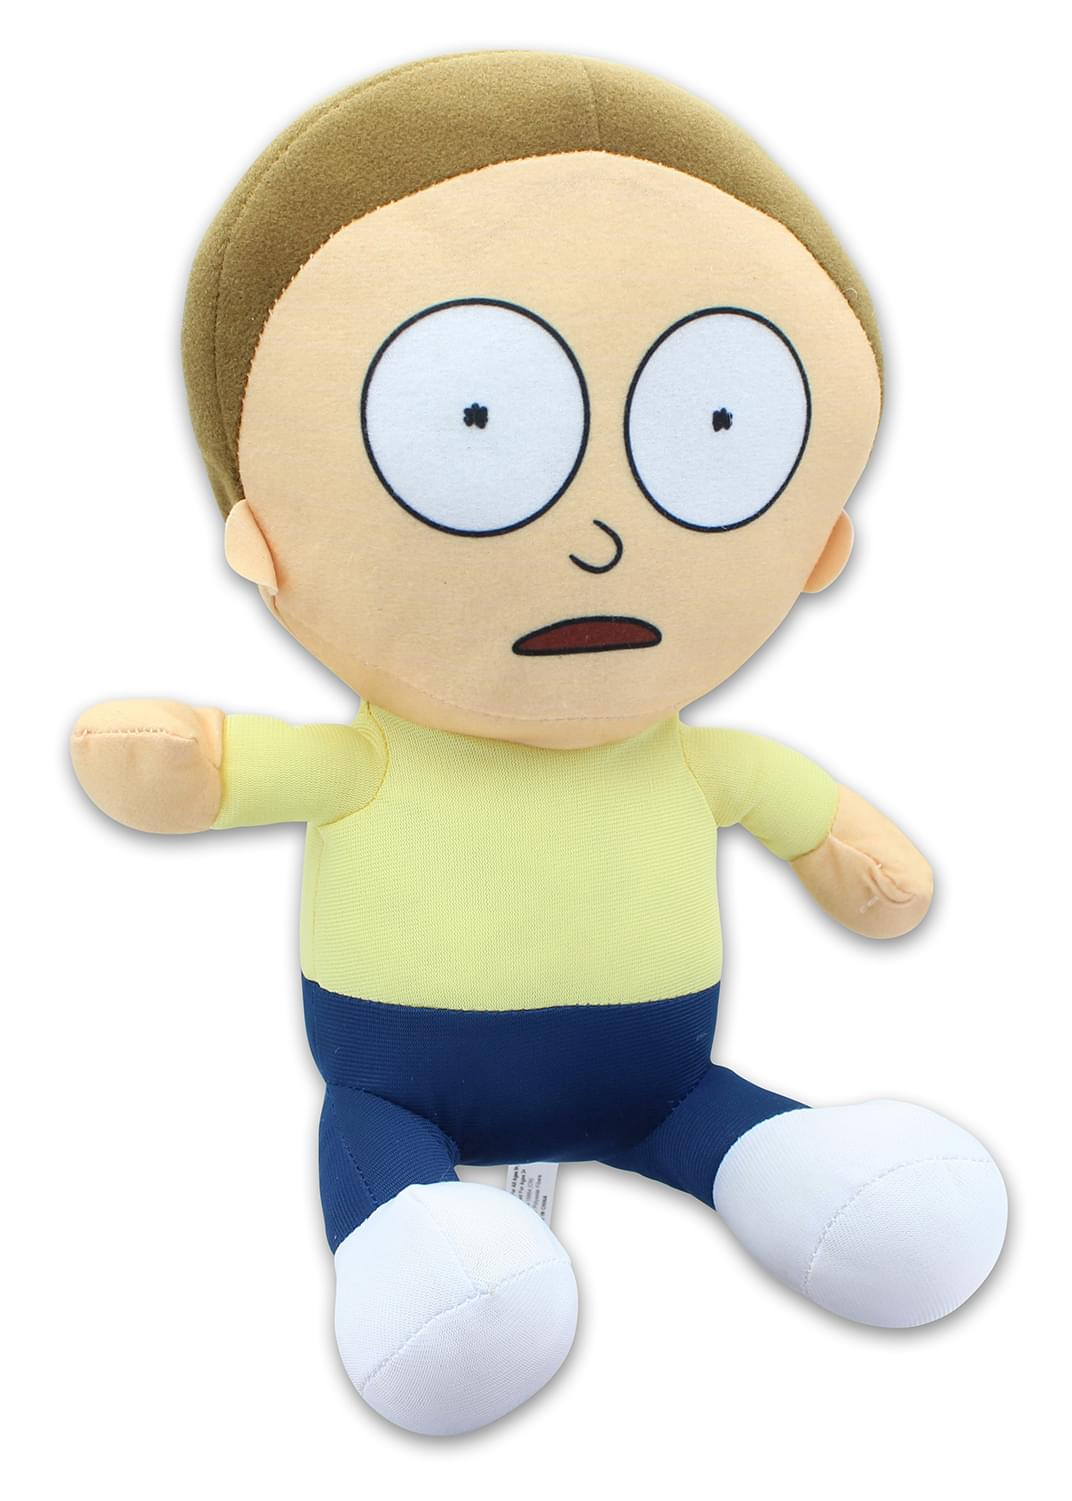 Rick & Morty 10 Inch Stuffed Character Plush | Morty